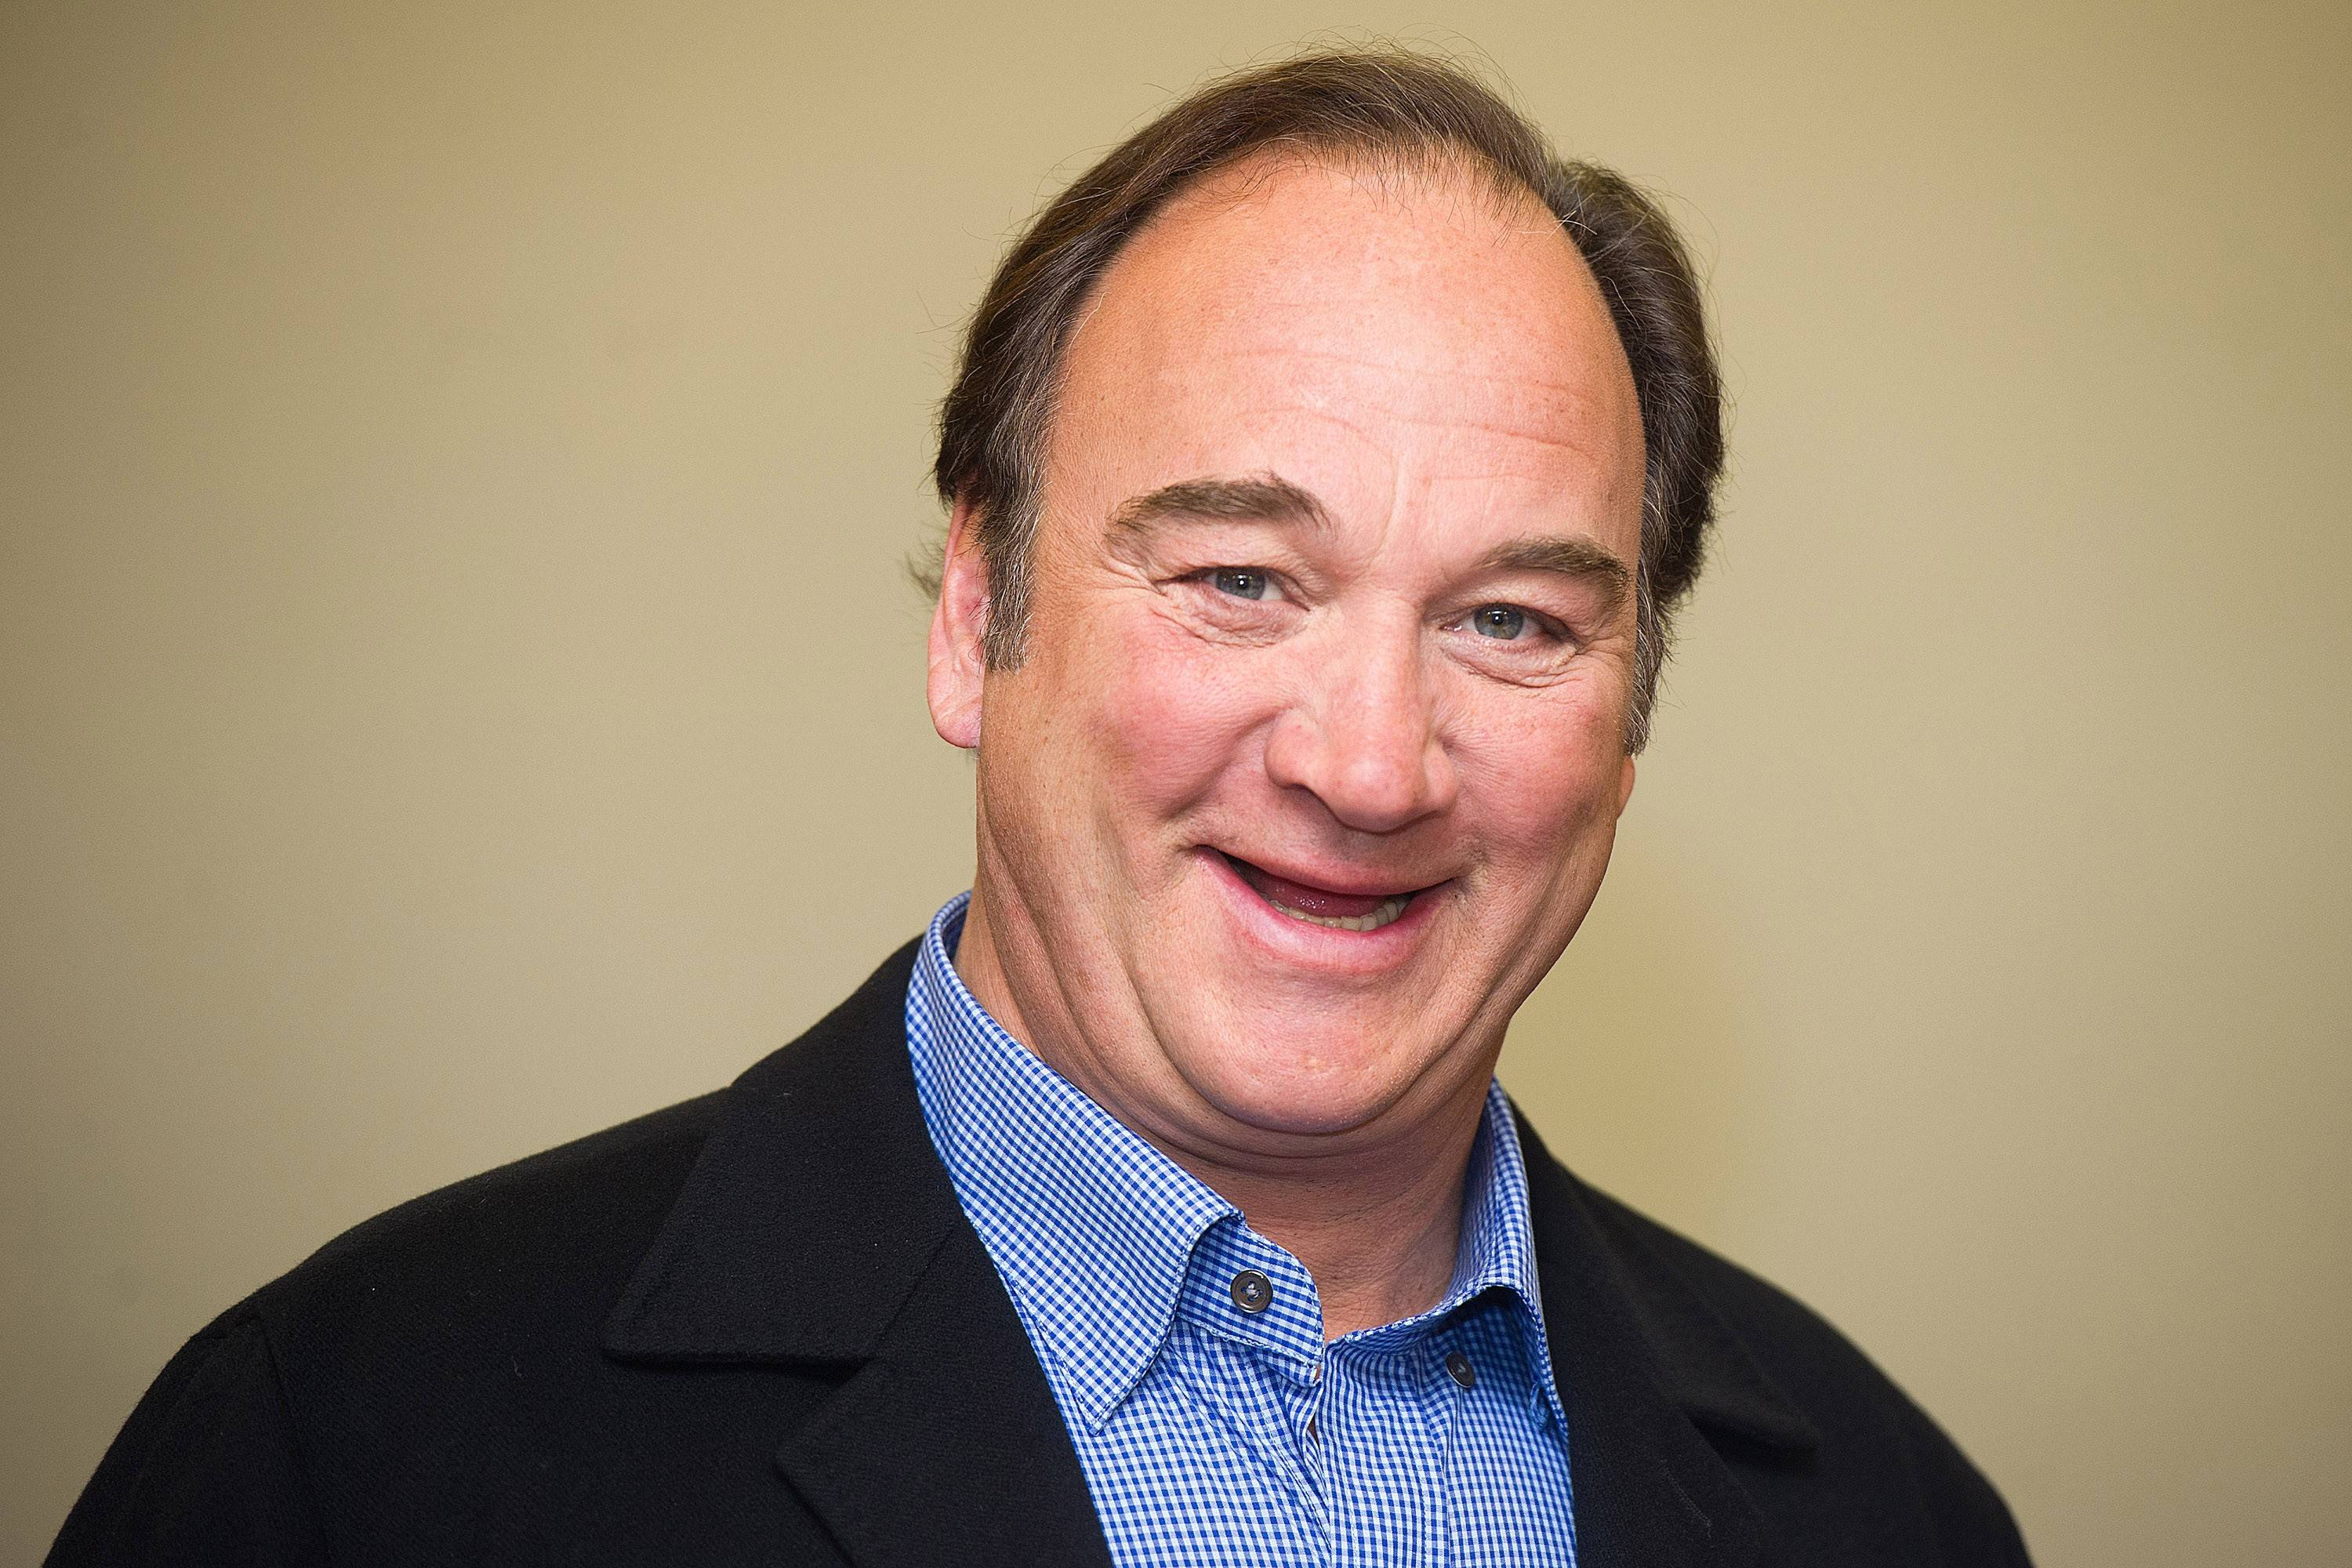 Jim Belushi appears with The Chicago Board of Comedy to officially open the renovated McAninch Arts Center at College of DuPage in Glen Ellyn.